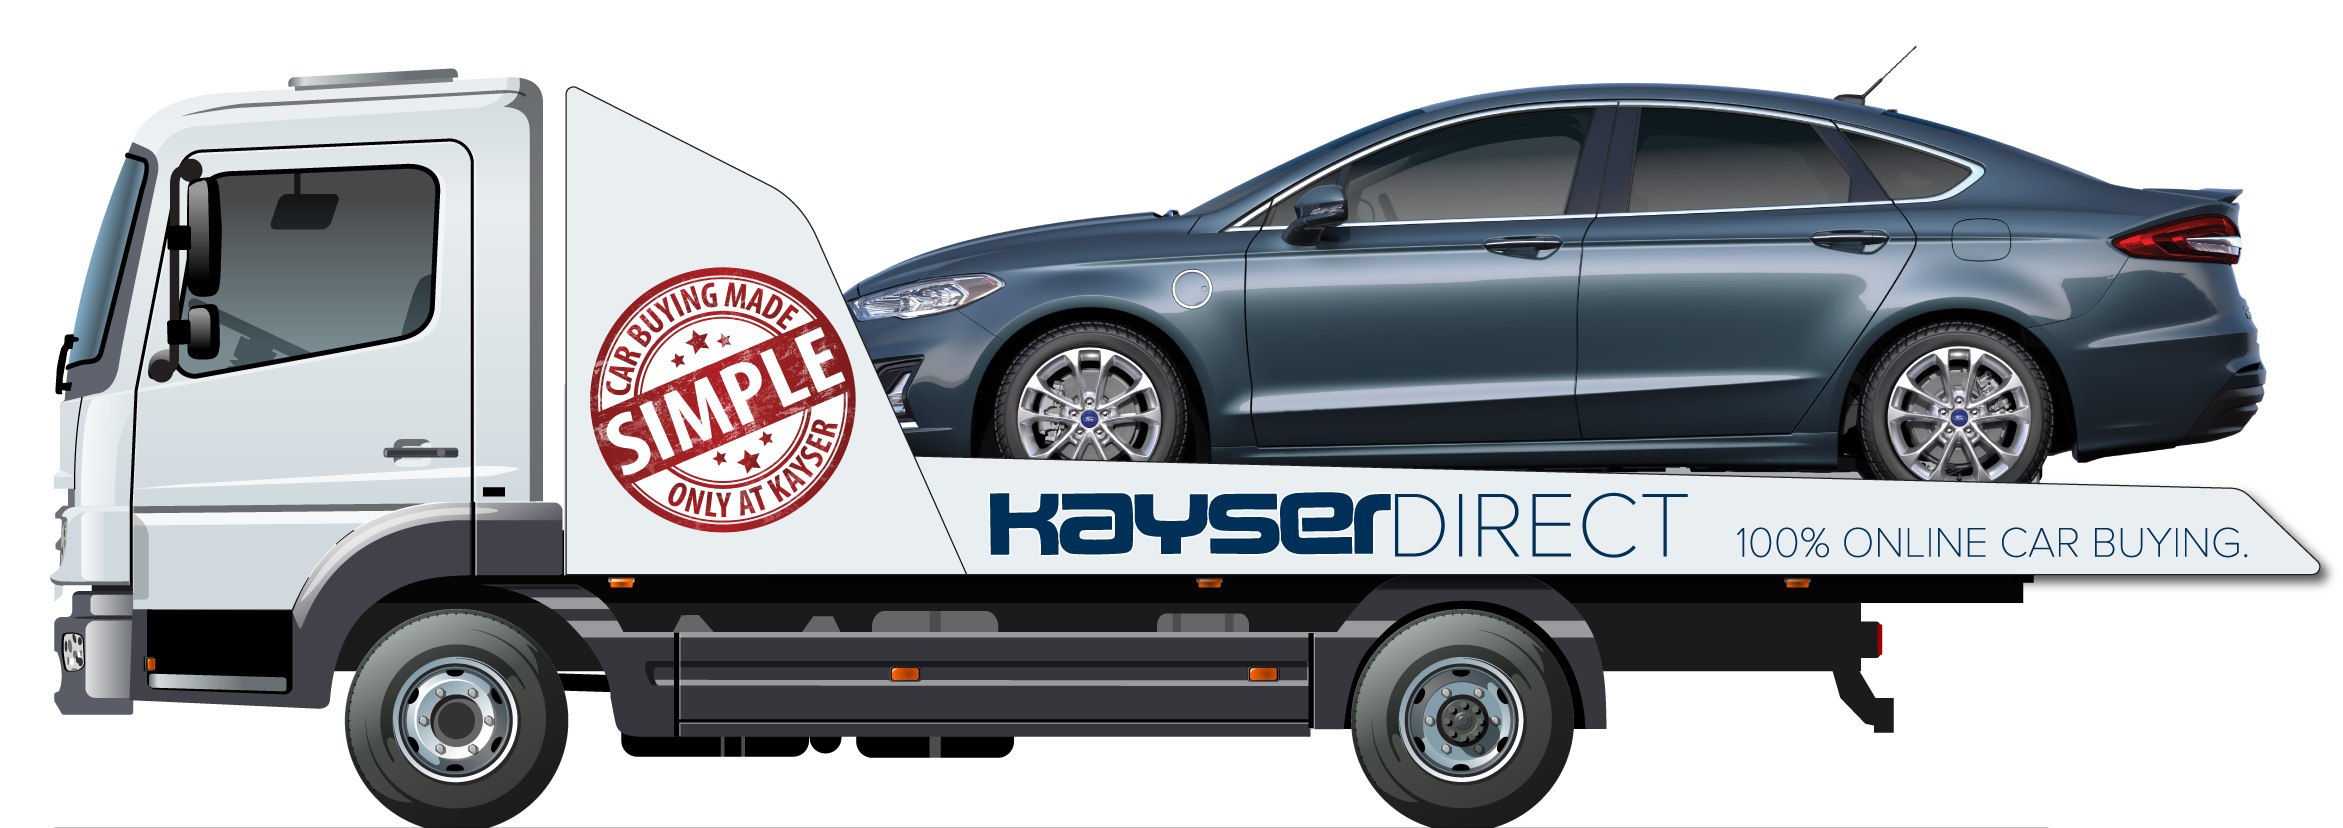 Kayser Direct flatbed delivery truck with car on the back